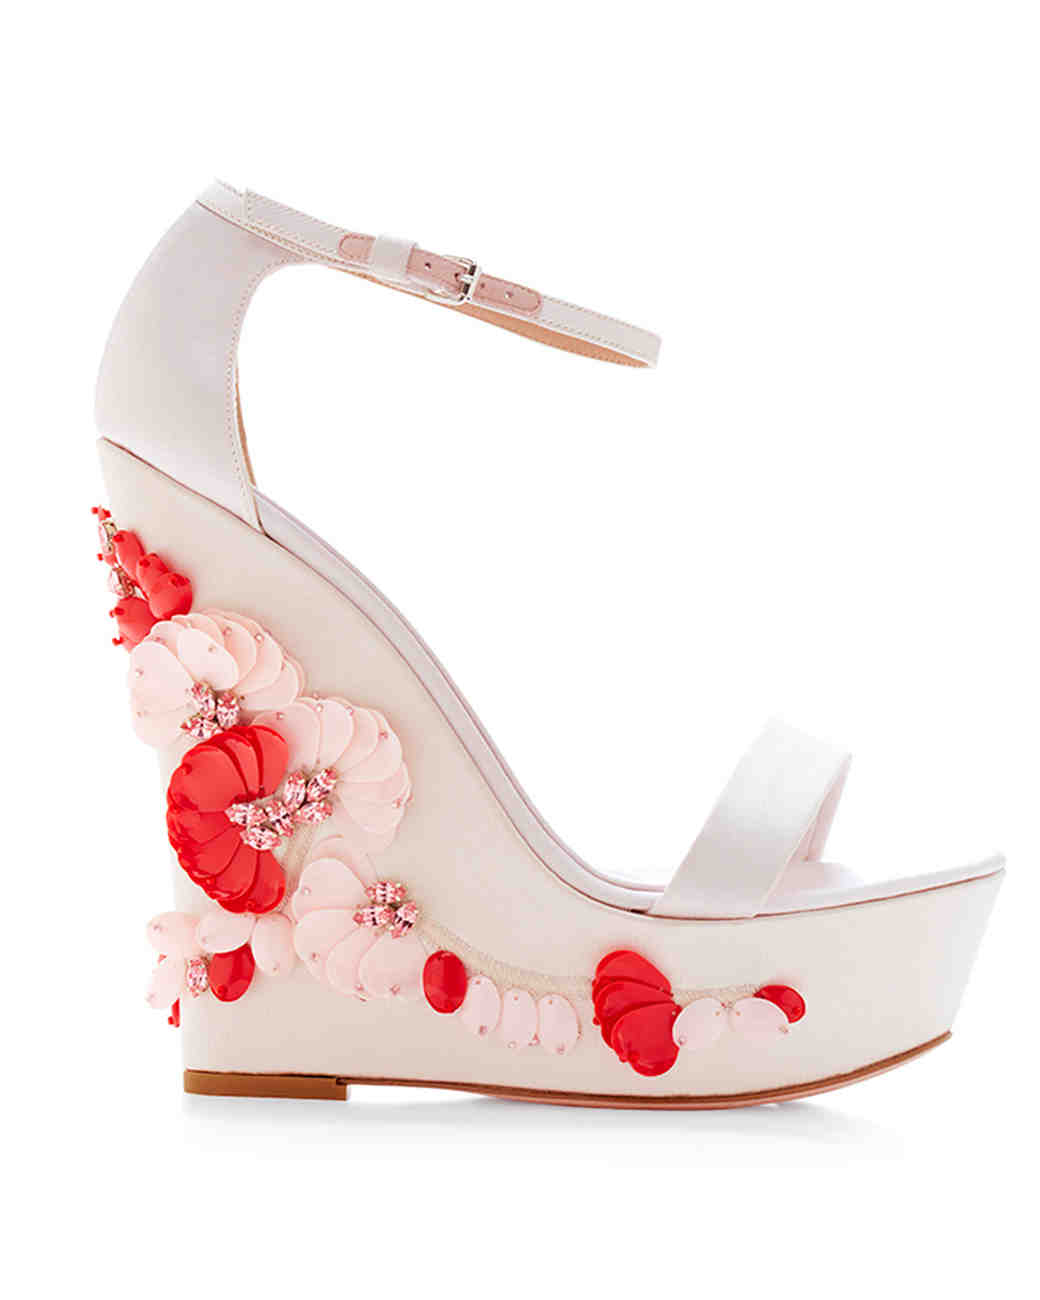 summer-wedding-shoes-giambattista-valli-wedge-sandals-0515.jpg